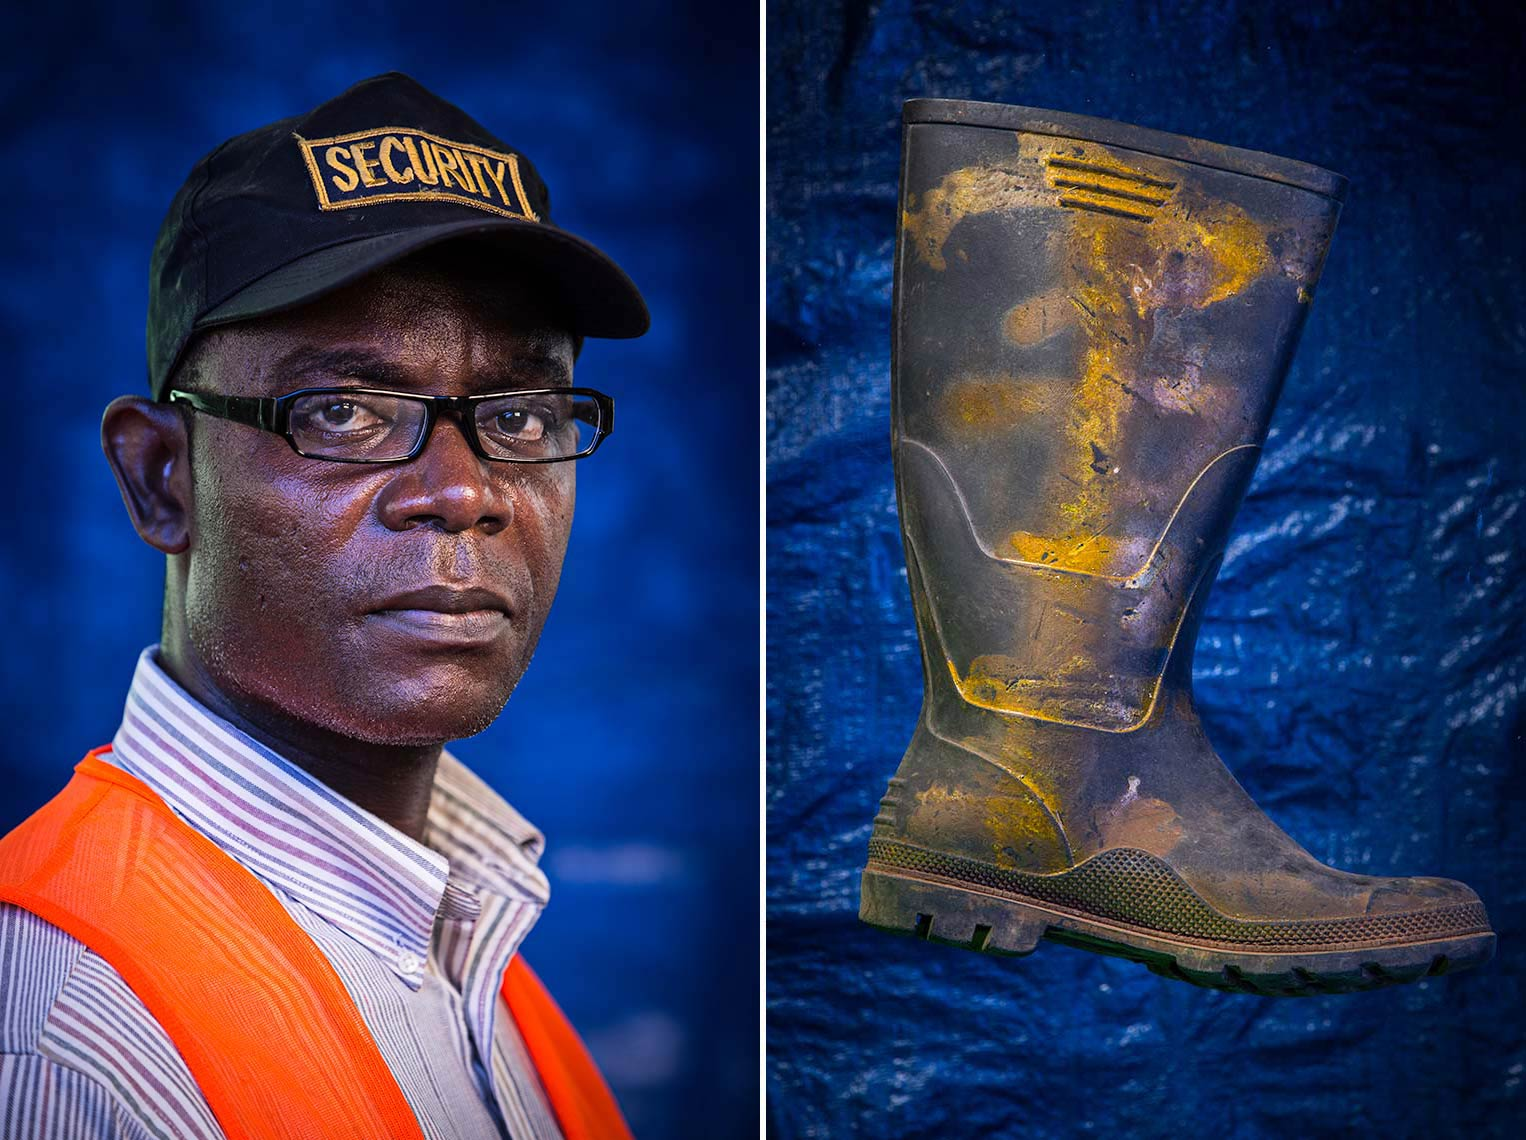 Series of images showcasing Personal Protective equipment used to guard against Ebola